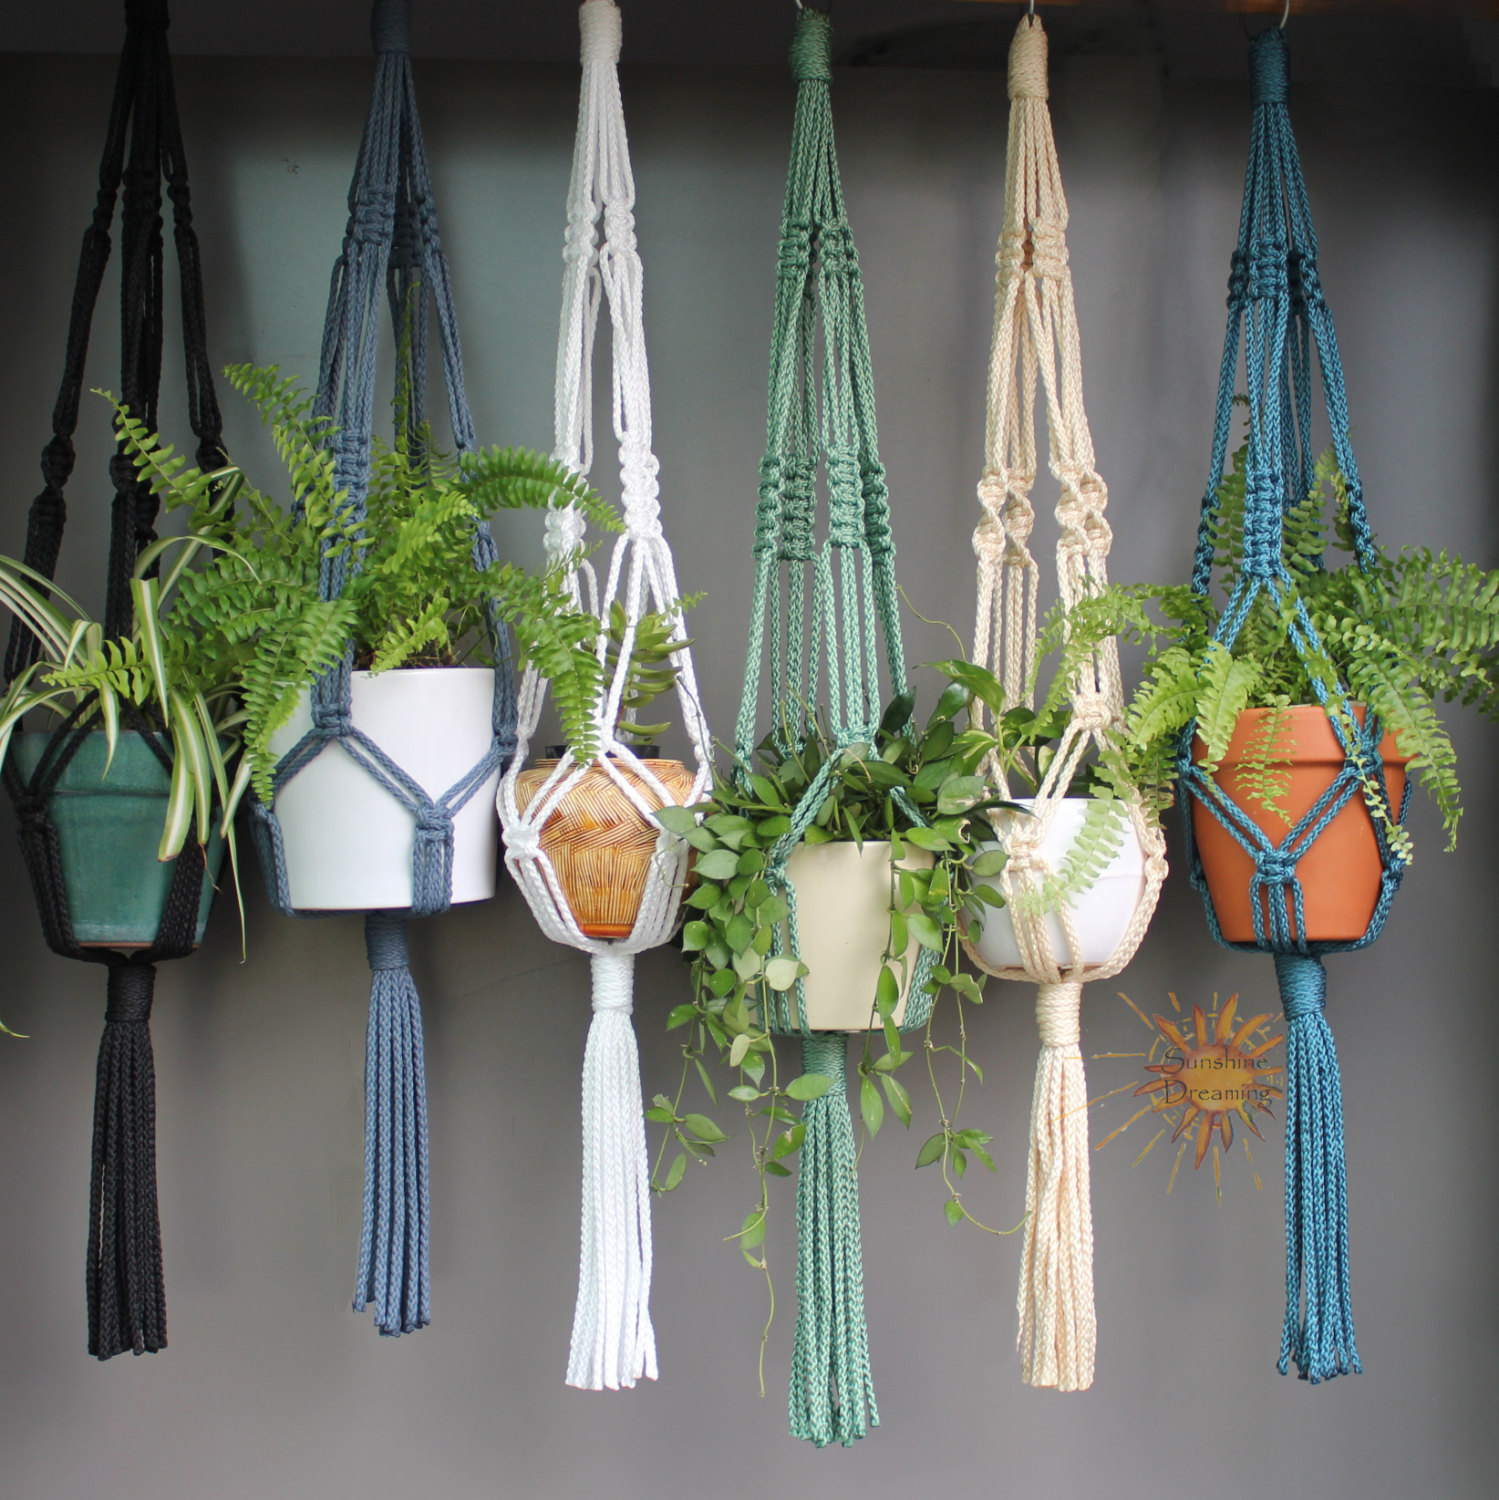 19 Macramé Plant Hanger Patterns & Instructions - Patterns Hub